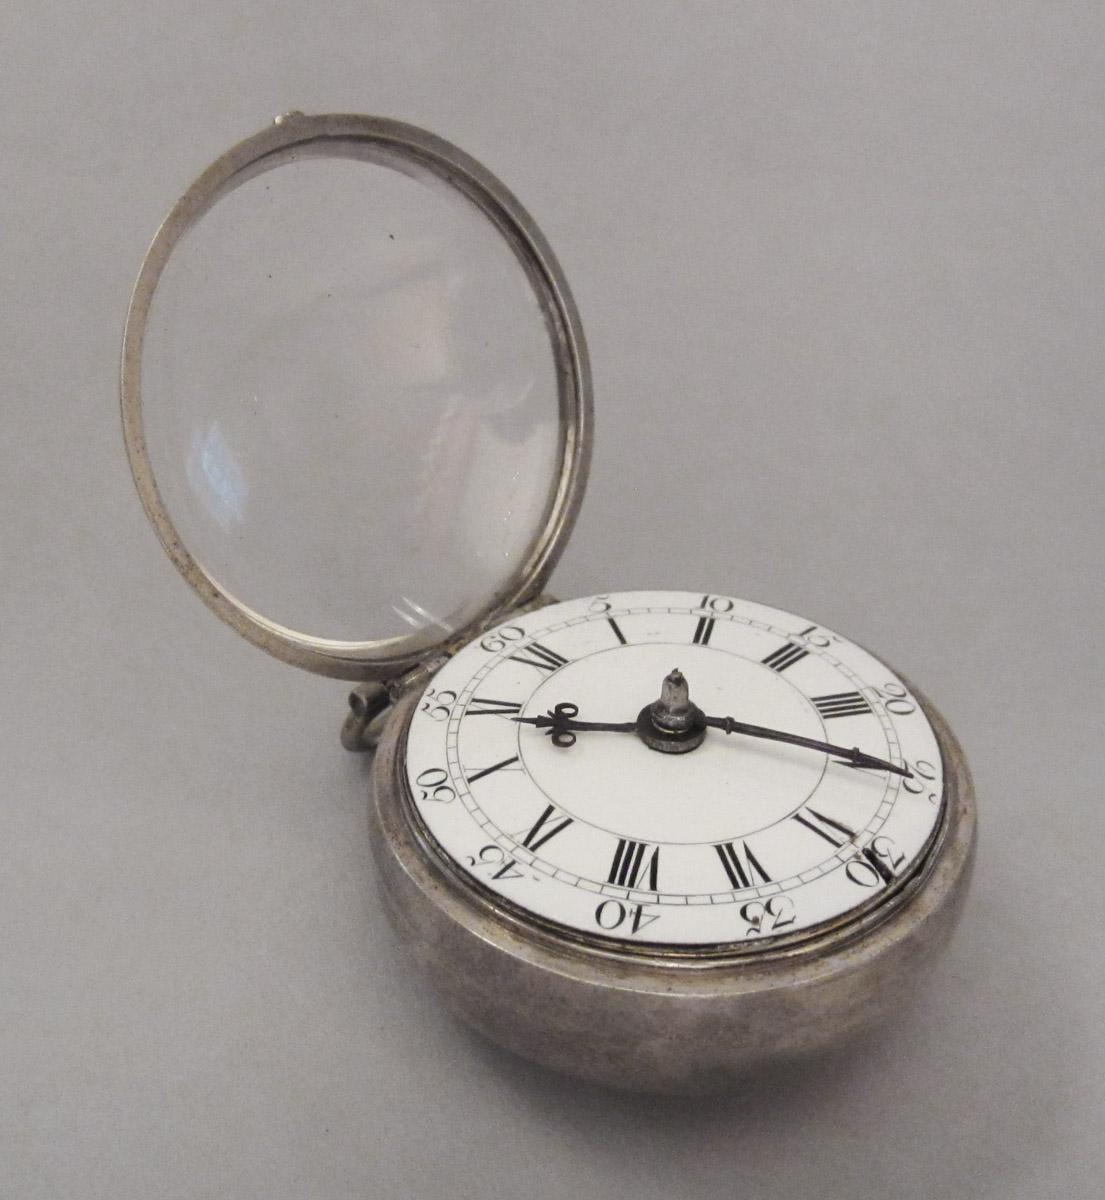 1956.0029.001 B, C Watch case, view 1